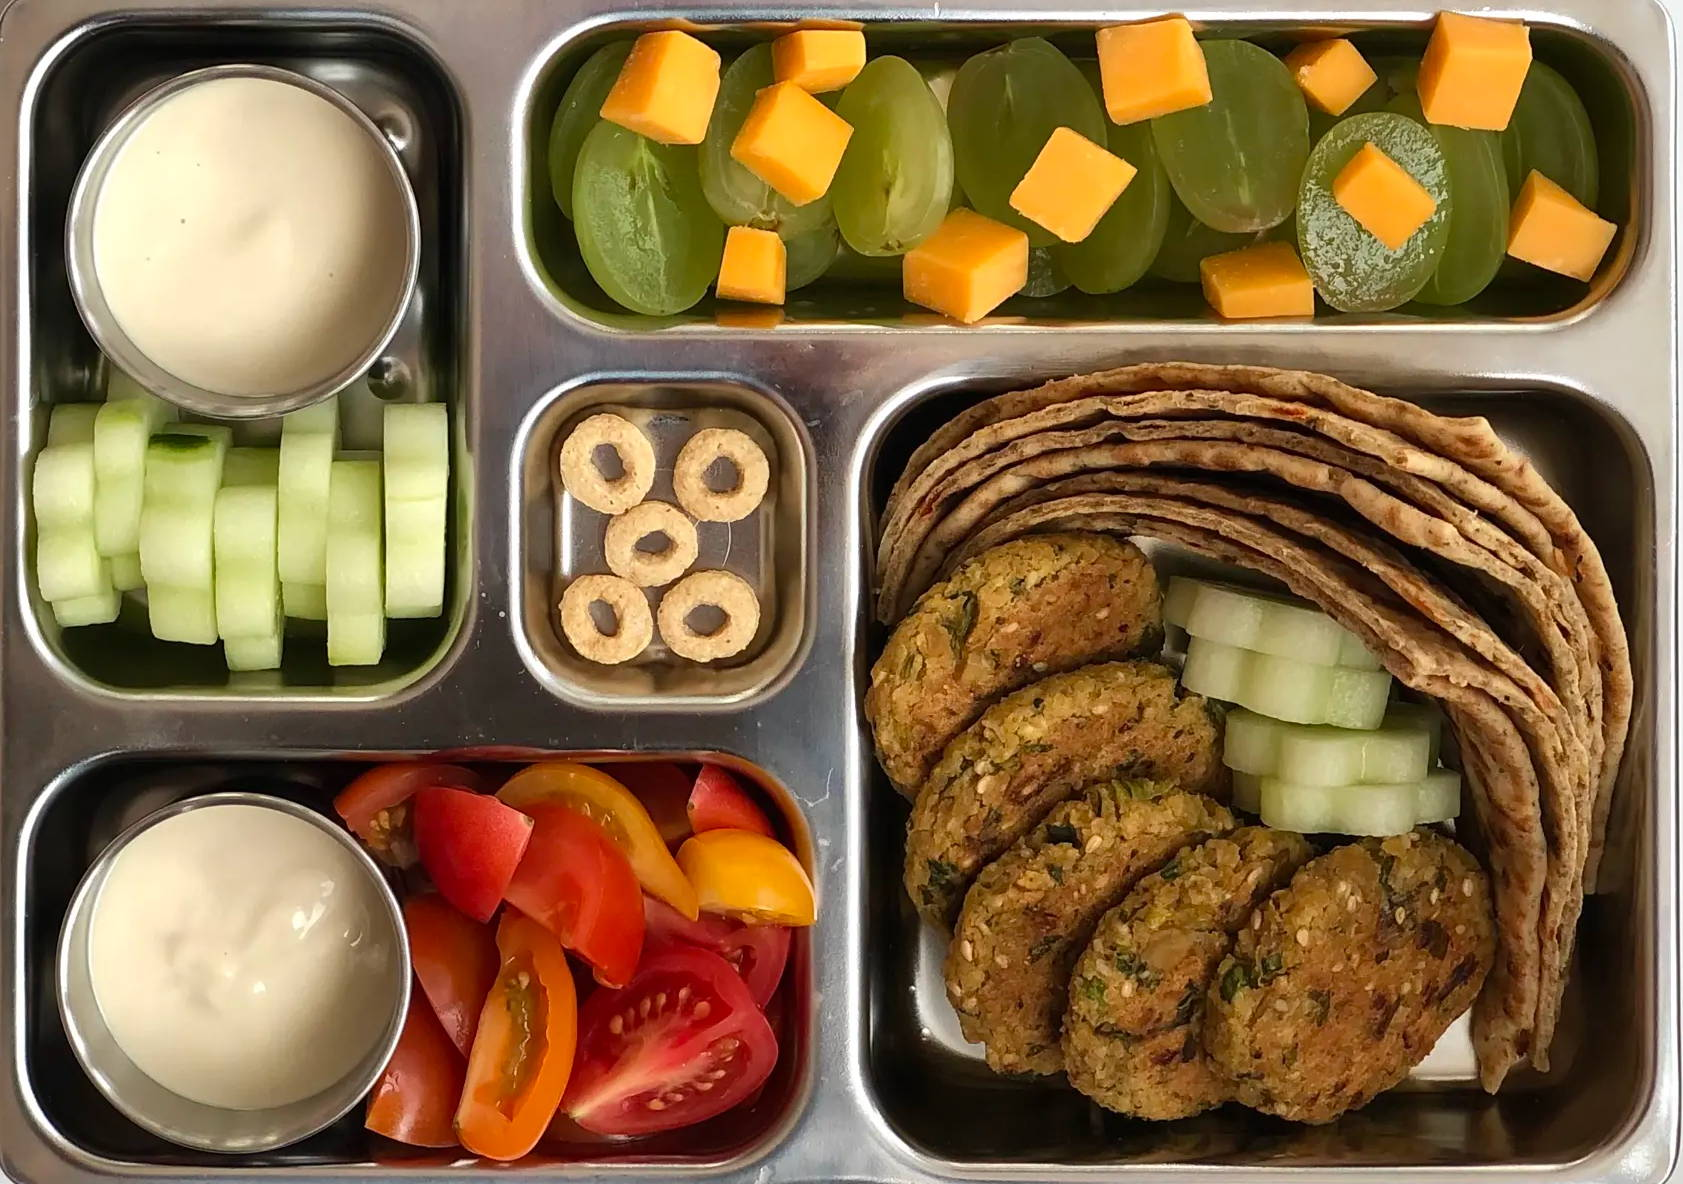 Sneak peek of a kid's quick and healthy school lunch containing Falafel Dipper, Tahini Drizzle Sauce,  English Cucumber Cut-Outs, Rainbow Cherry Tomatoes, Lavash Wedges,  Grapes & Cheddar, and Whole Grain O's.